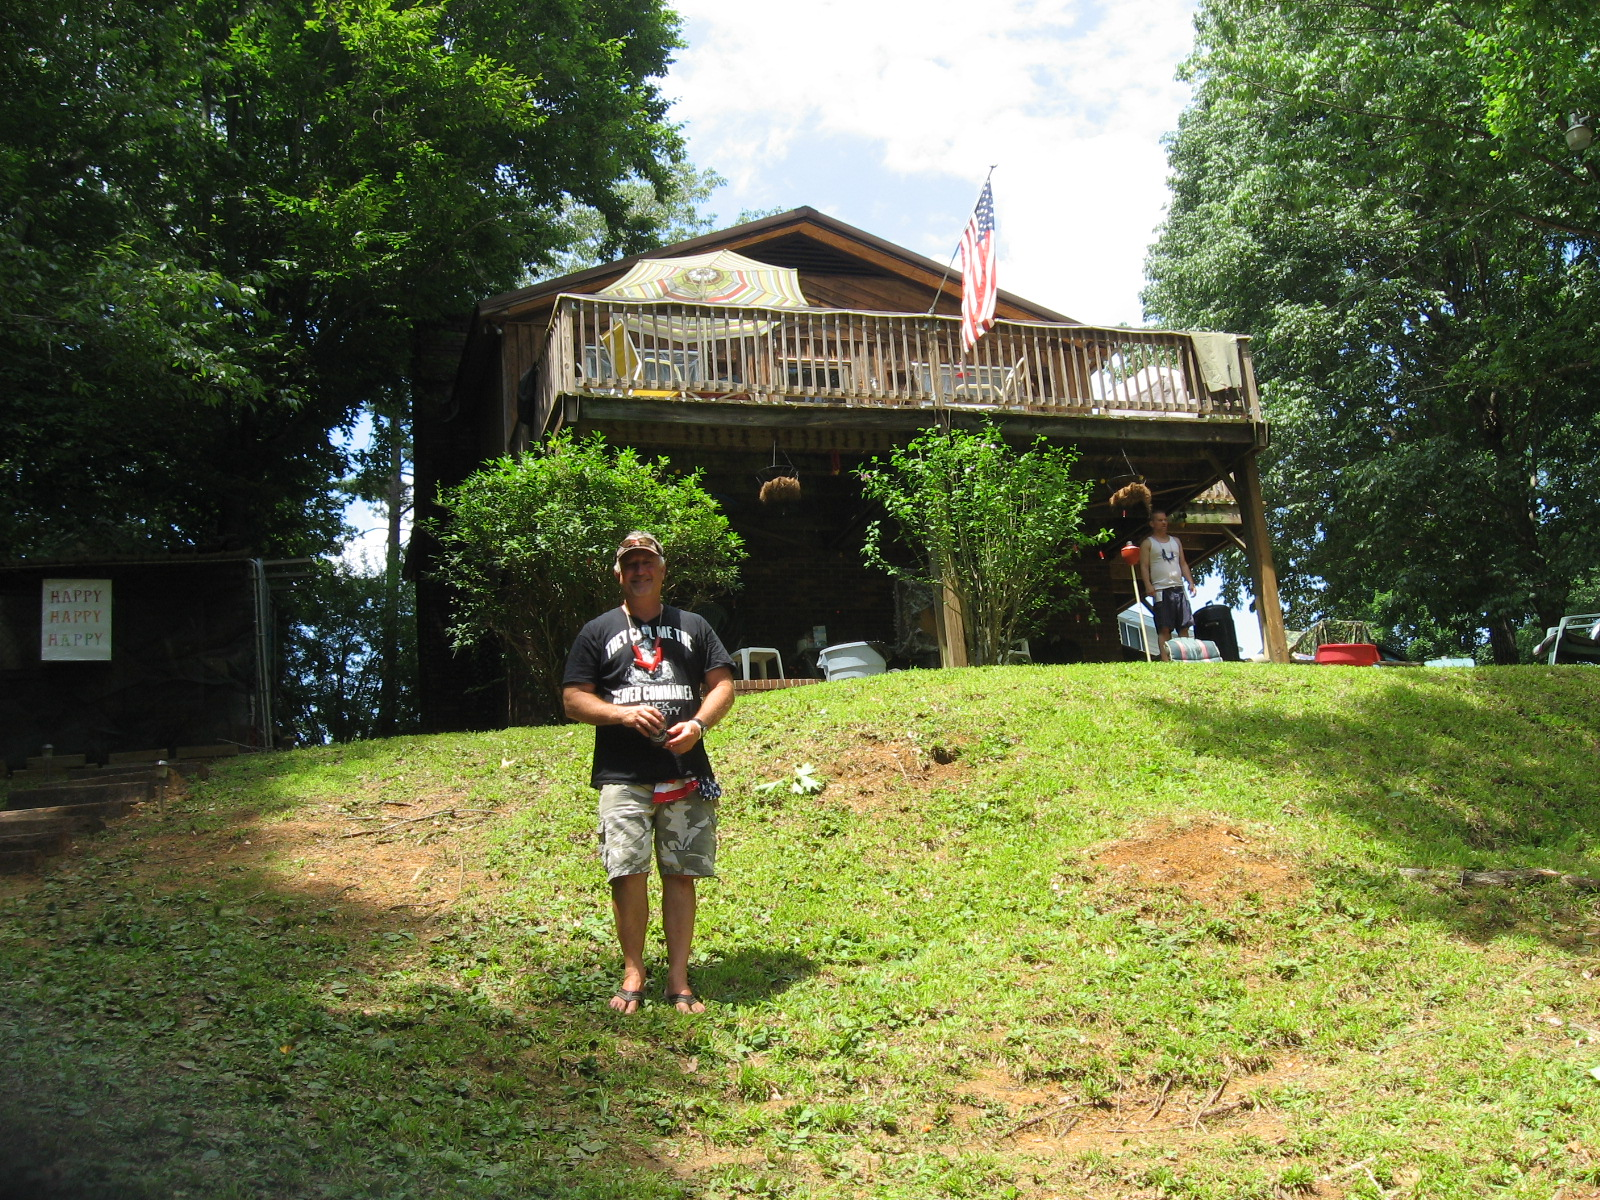 DUCK DYNASTY - POKER RUN STOP - HOSTED BY RICHARD KEENER